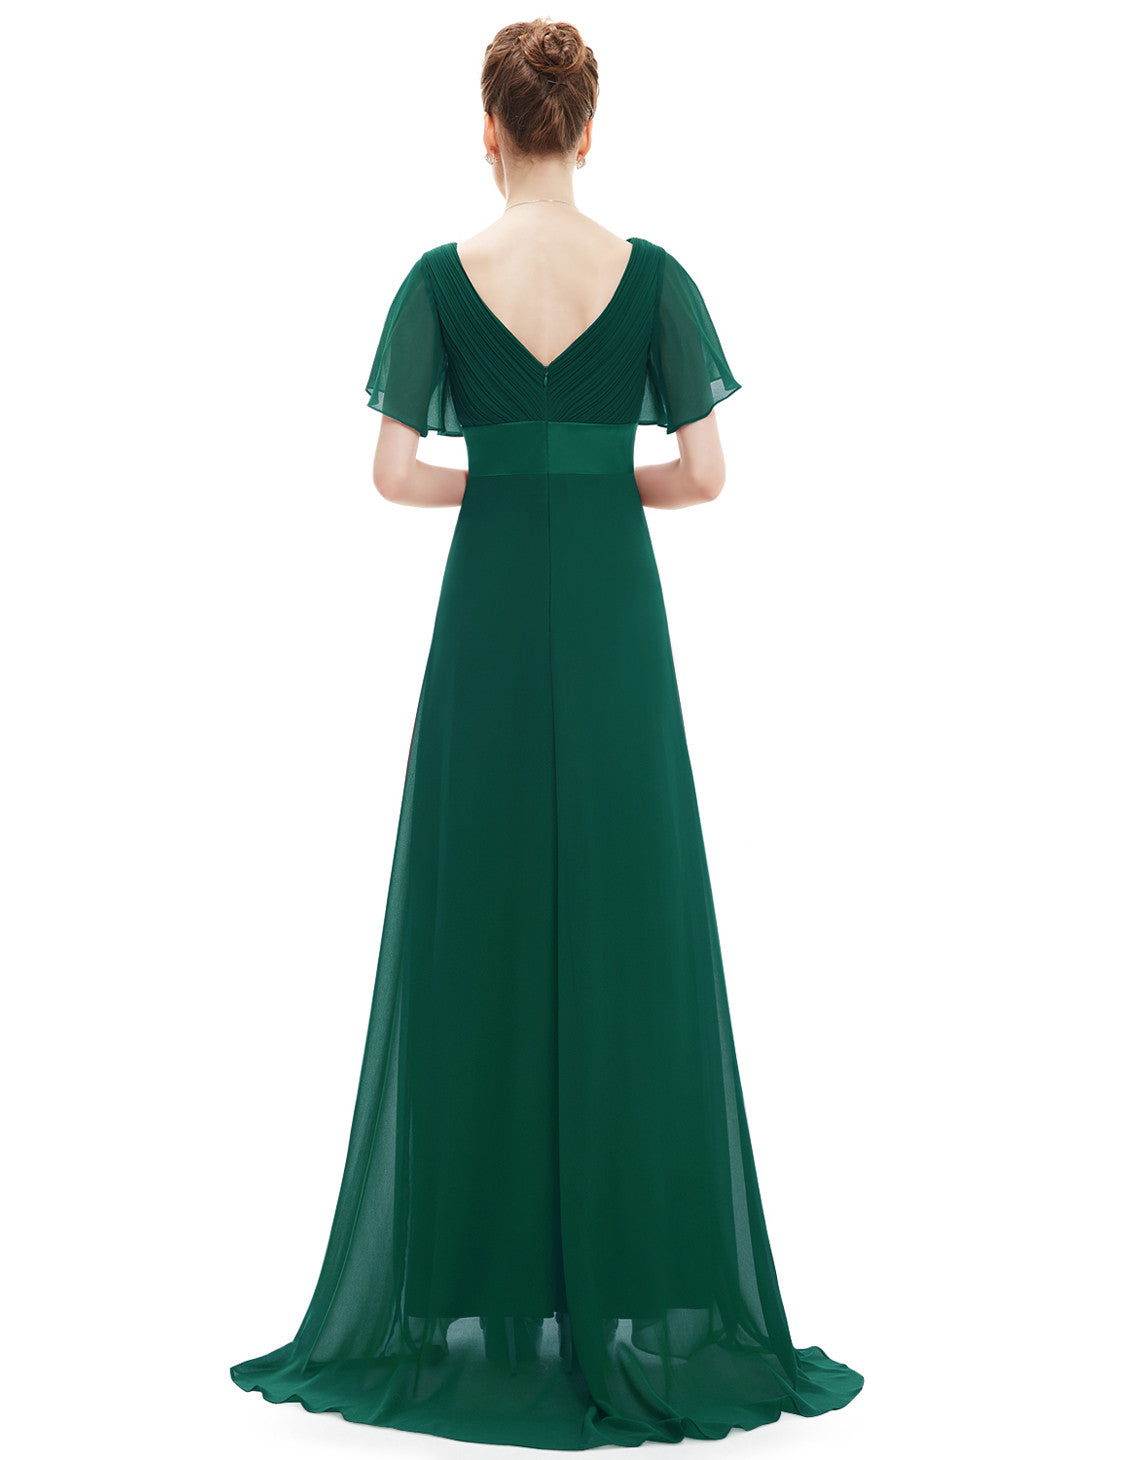 Obeige Glamorous Green Double V-Neck Ruffles Padded Evening Dress - O'beige